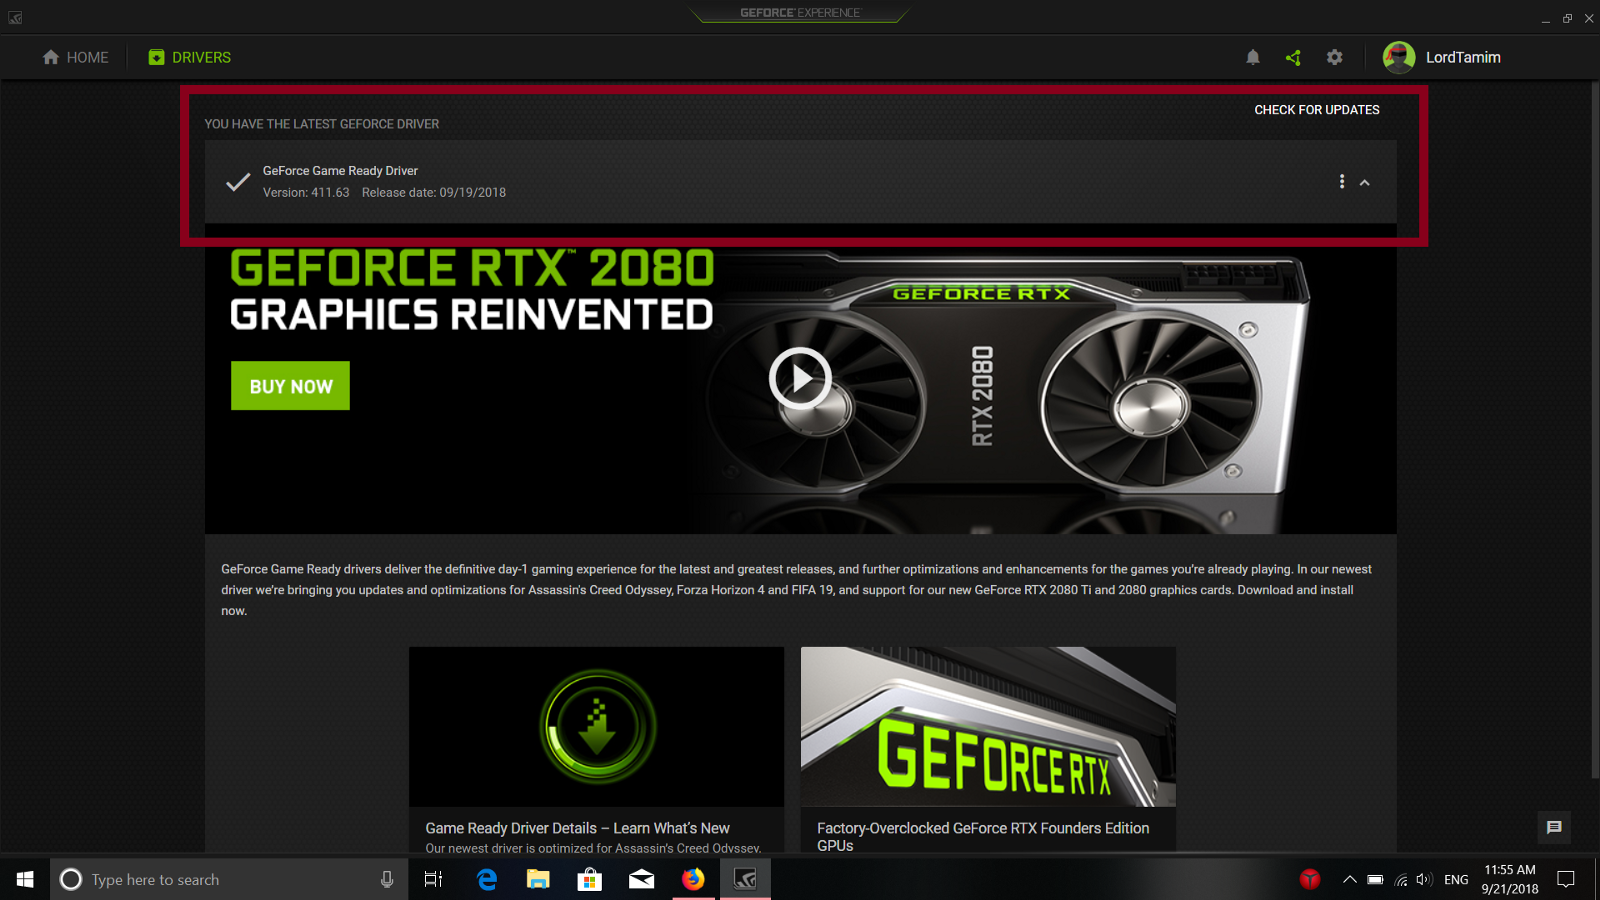 geforce experience download driver unable to connect to nvidia